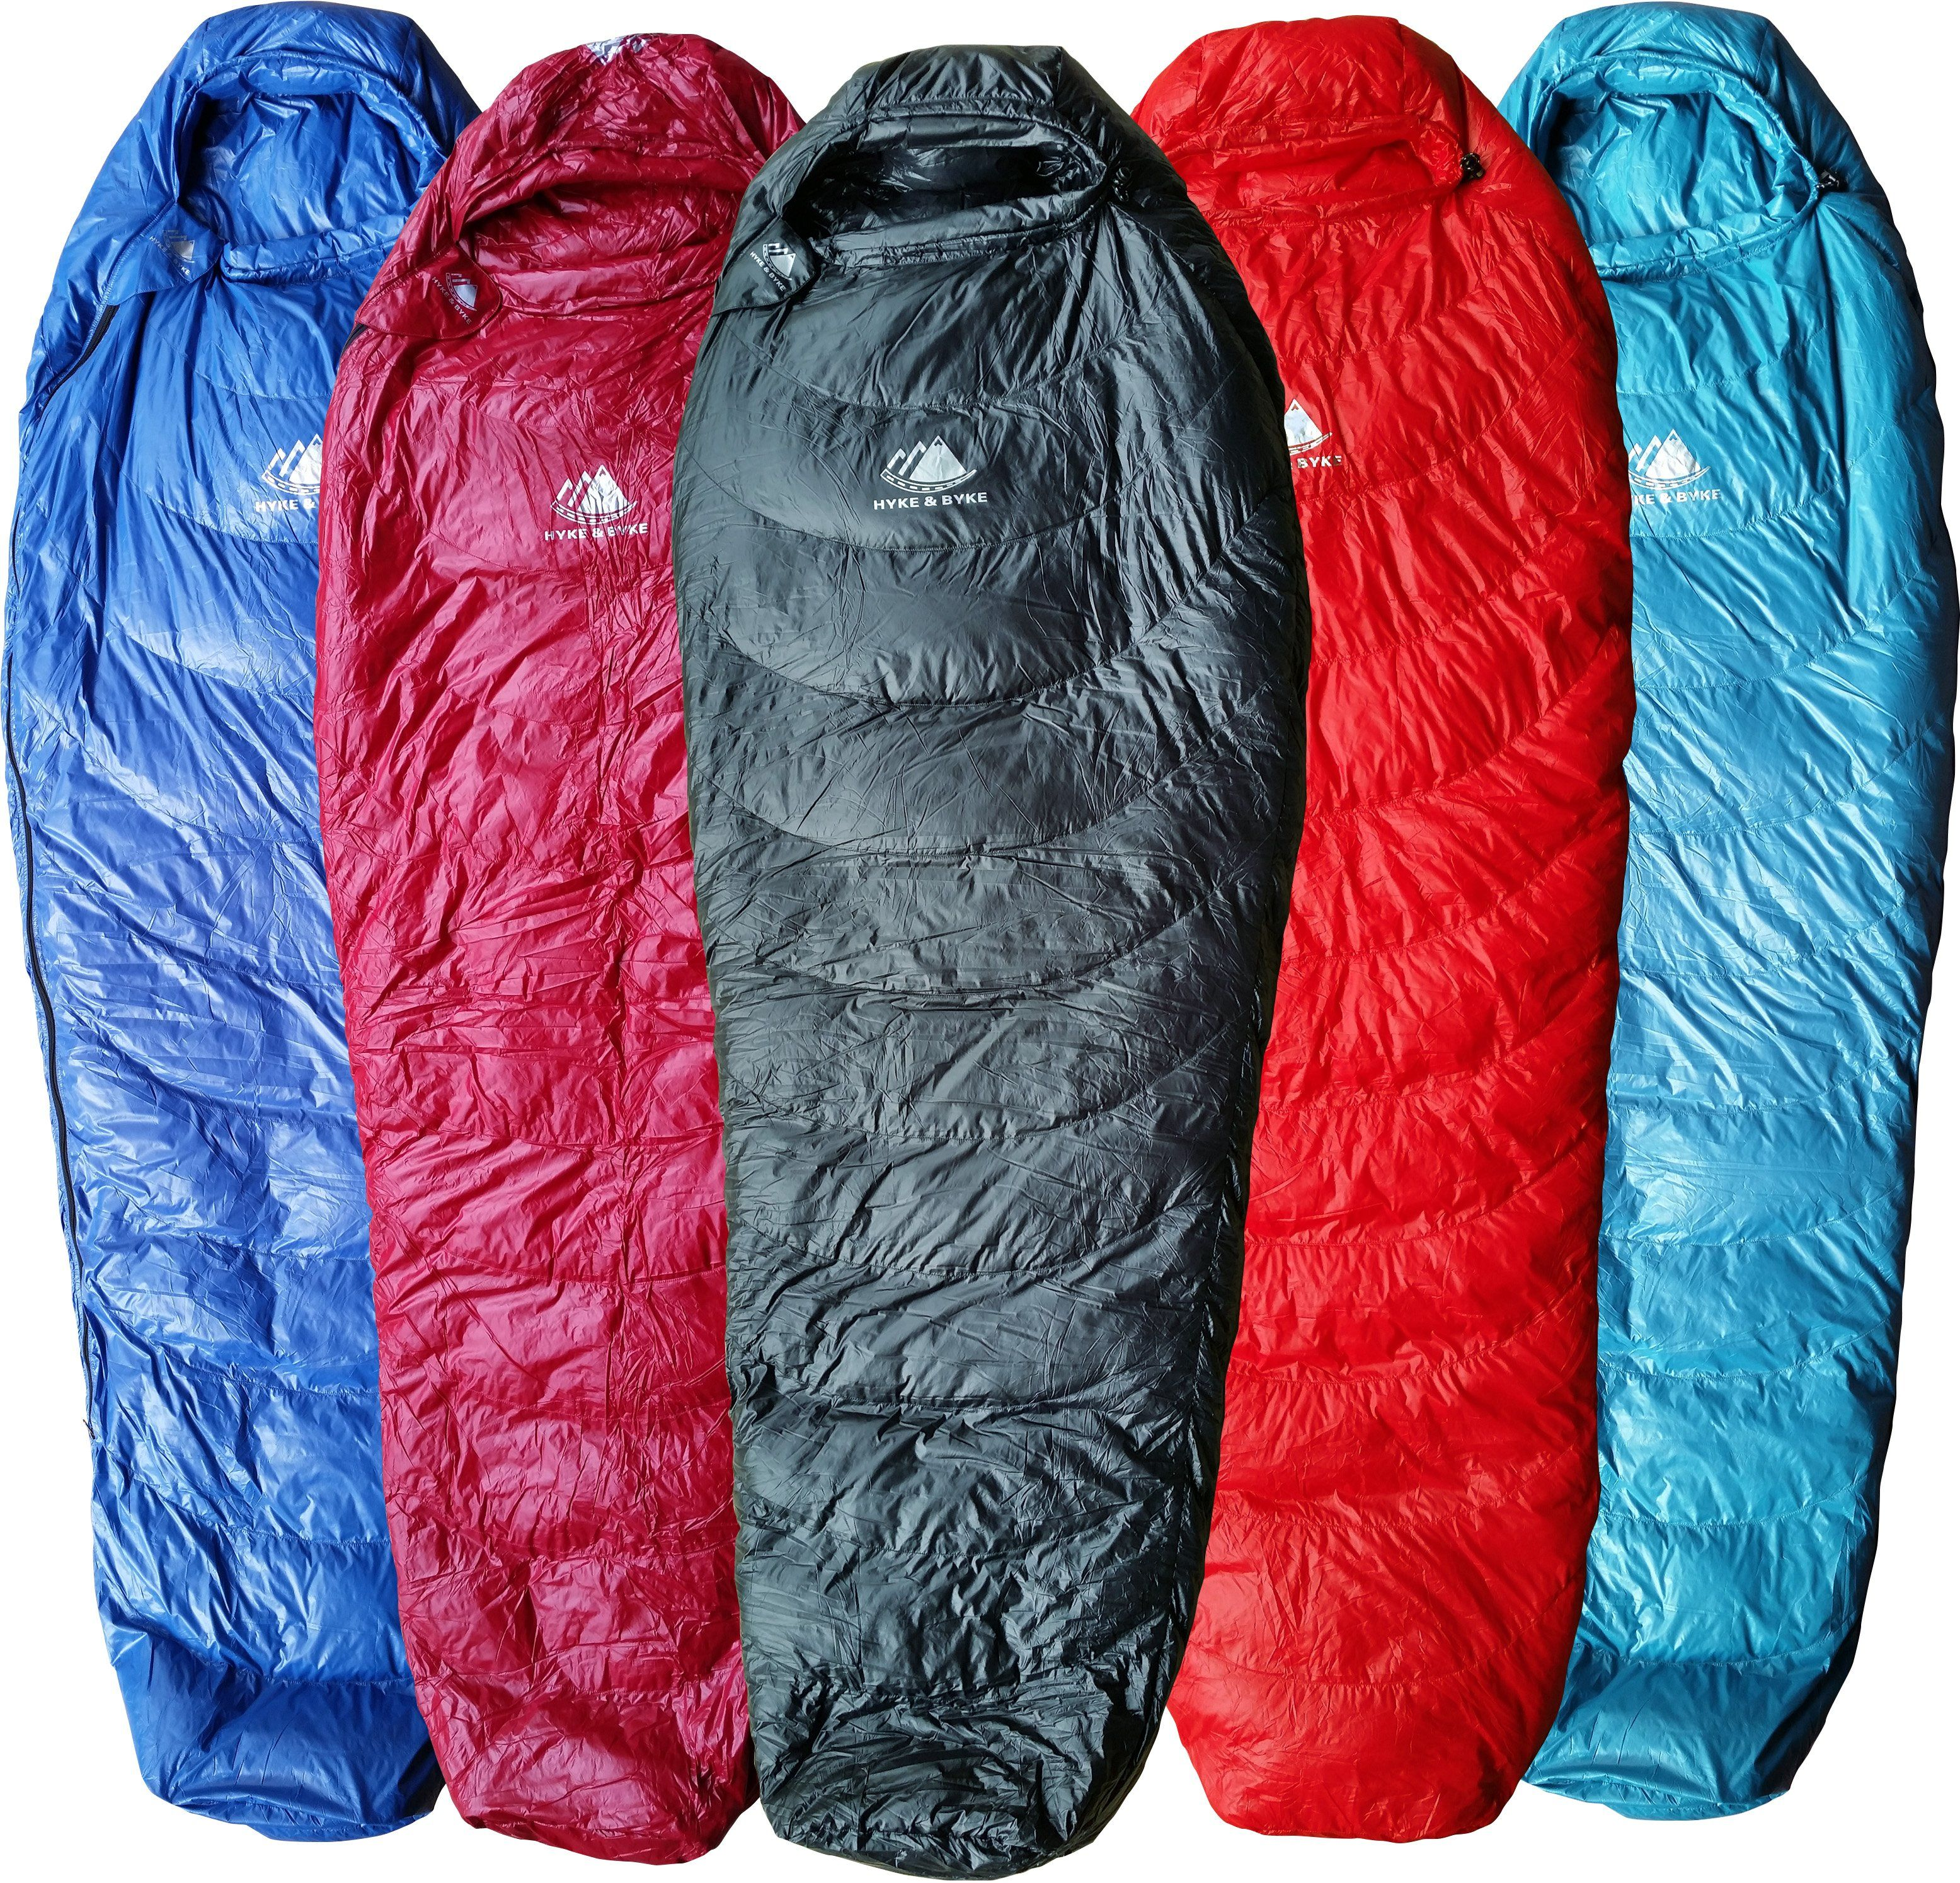 This Premium Quality Ultralight 32 Degree Mummy Duck Down Sleeping Bag For Backng Is The Lightest Most Compressible With Highest